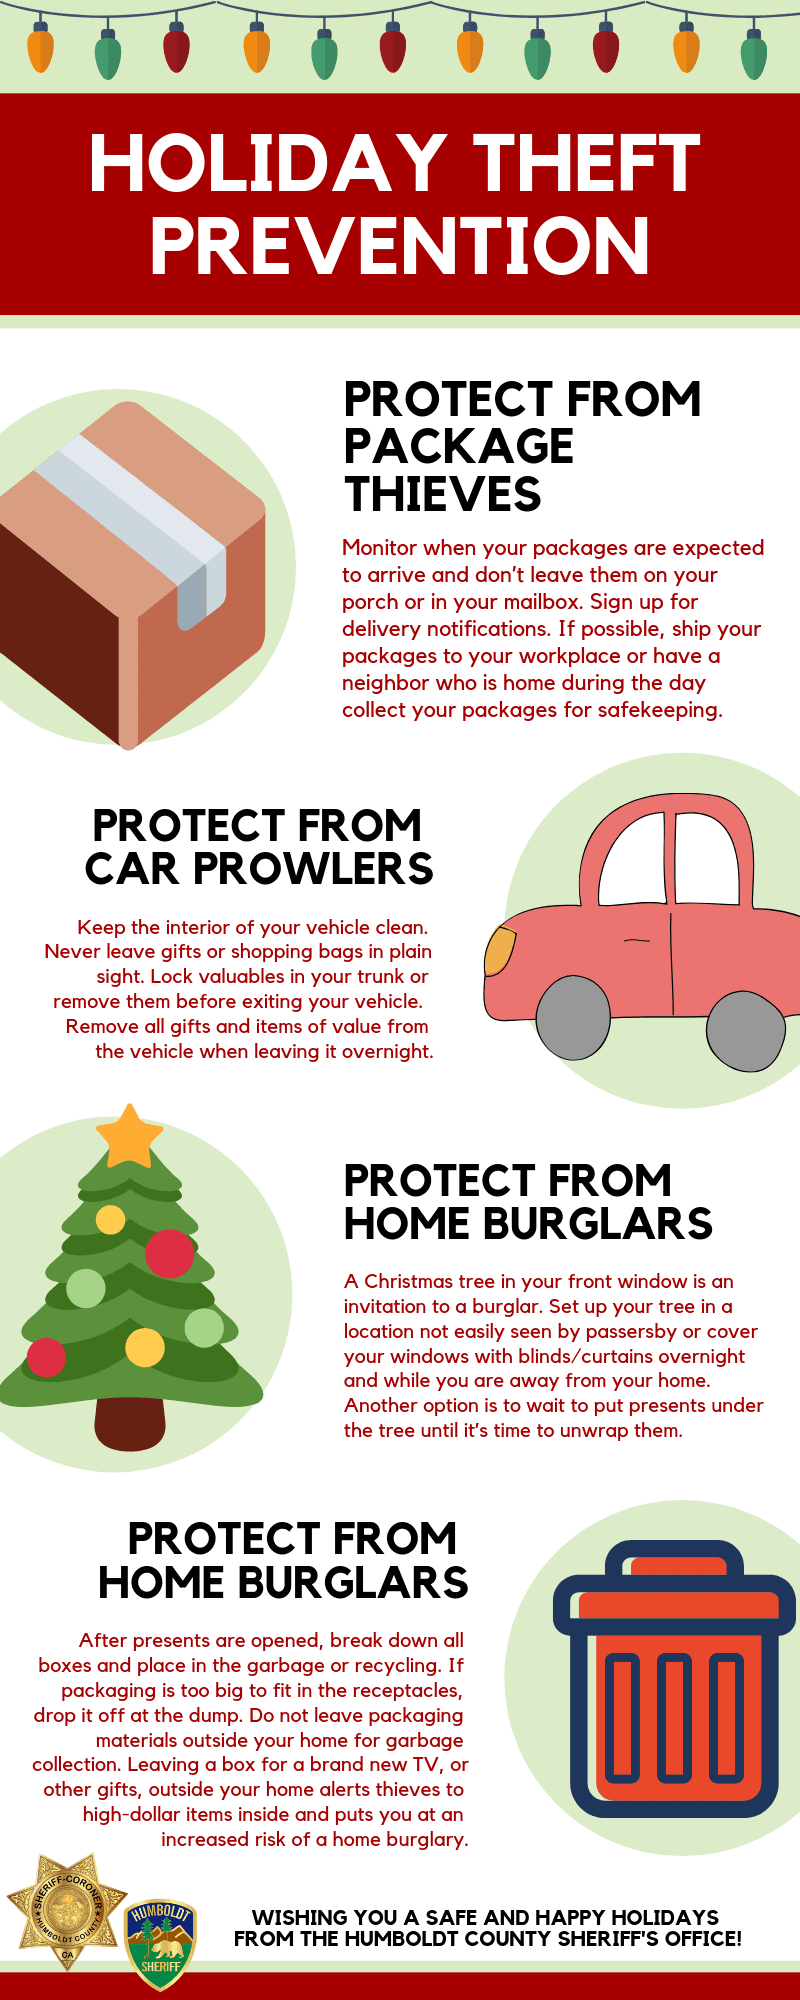 Holiday Safety Tips (all information on this image is in the article text)